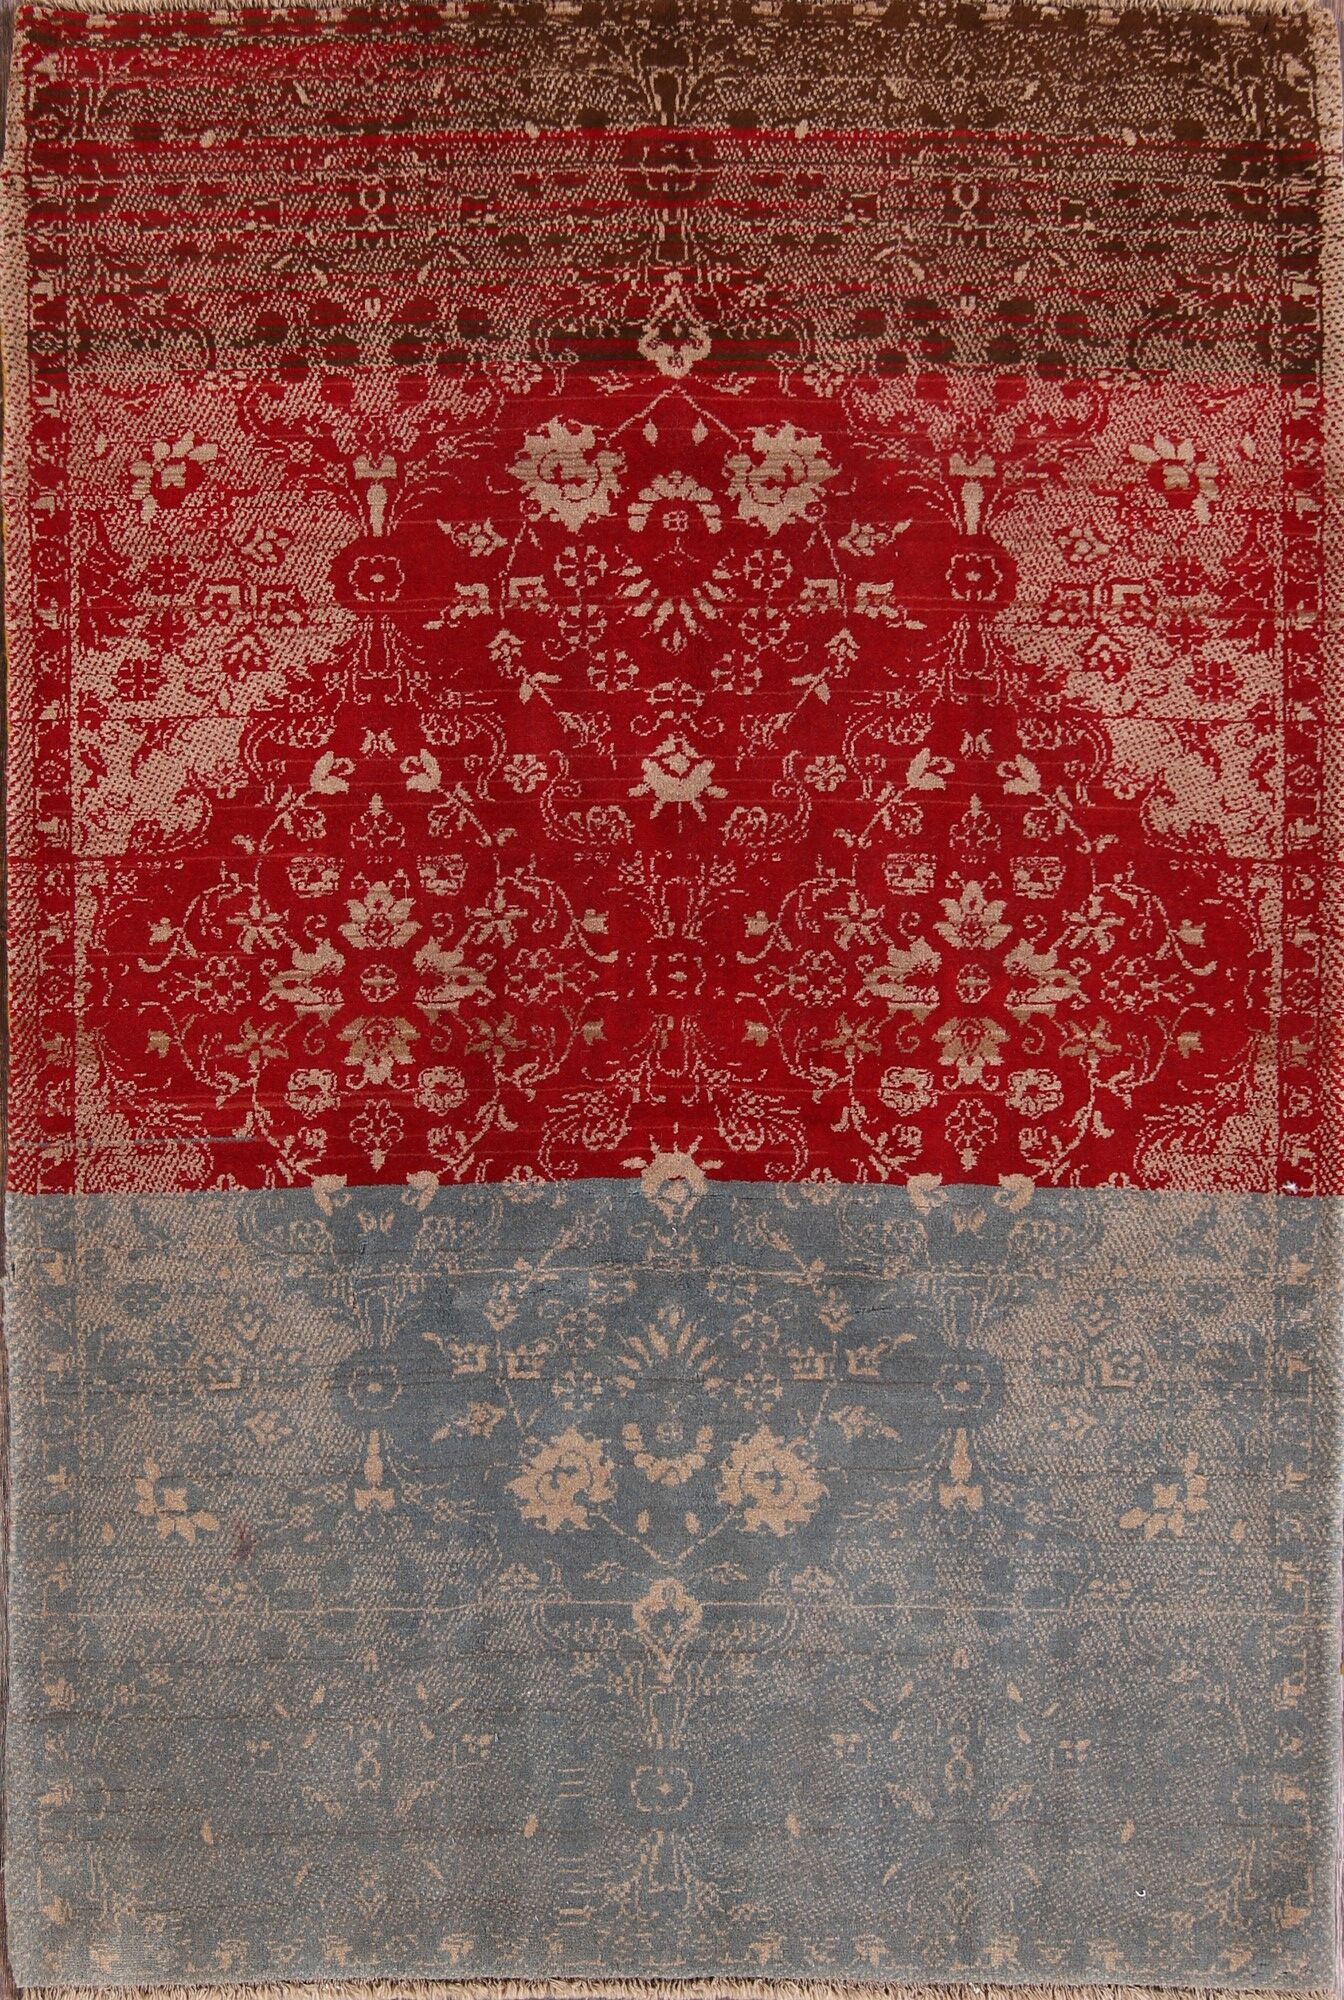 One-of-a-Kind Geometric Shiraz Persian Traditional Hand-Knotted 4'11